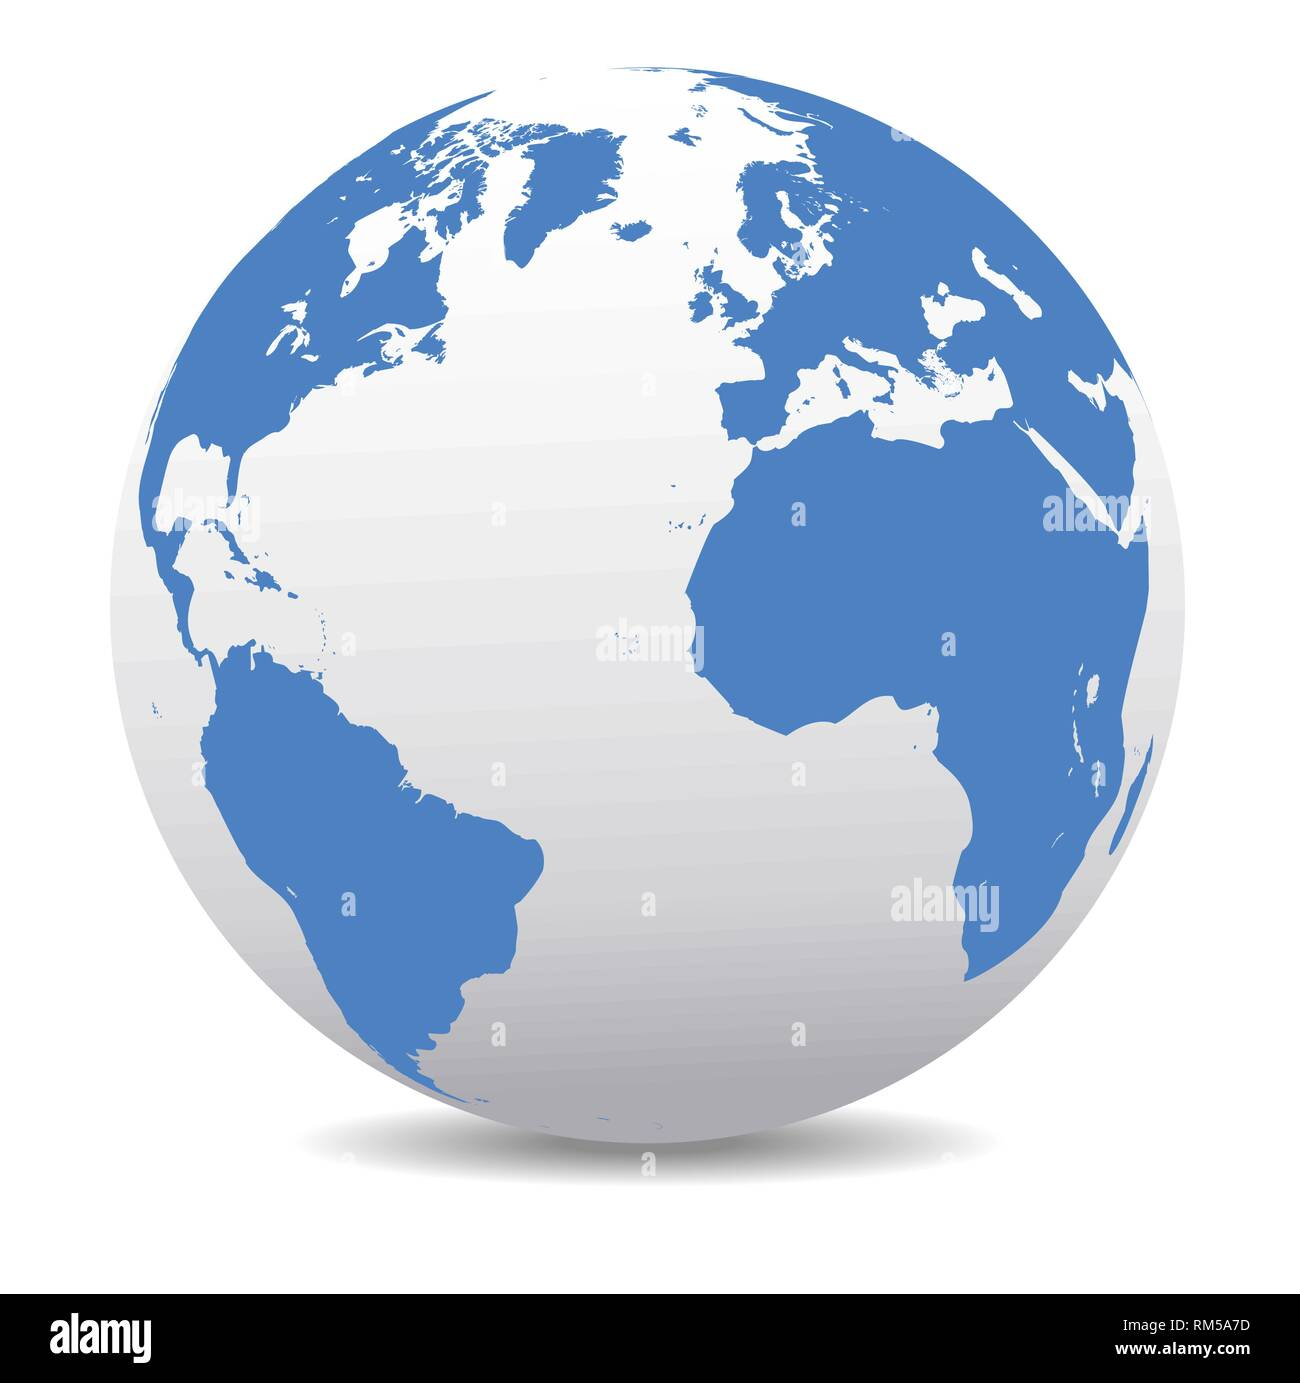 Europe, North and South America, Africa Global World, Vector Map Icon of the world in Globe - Stock Vector